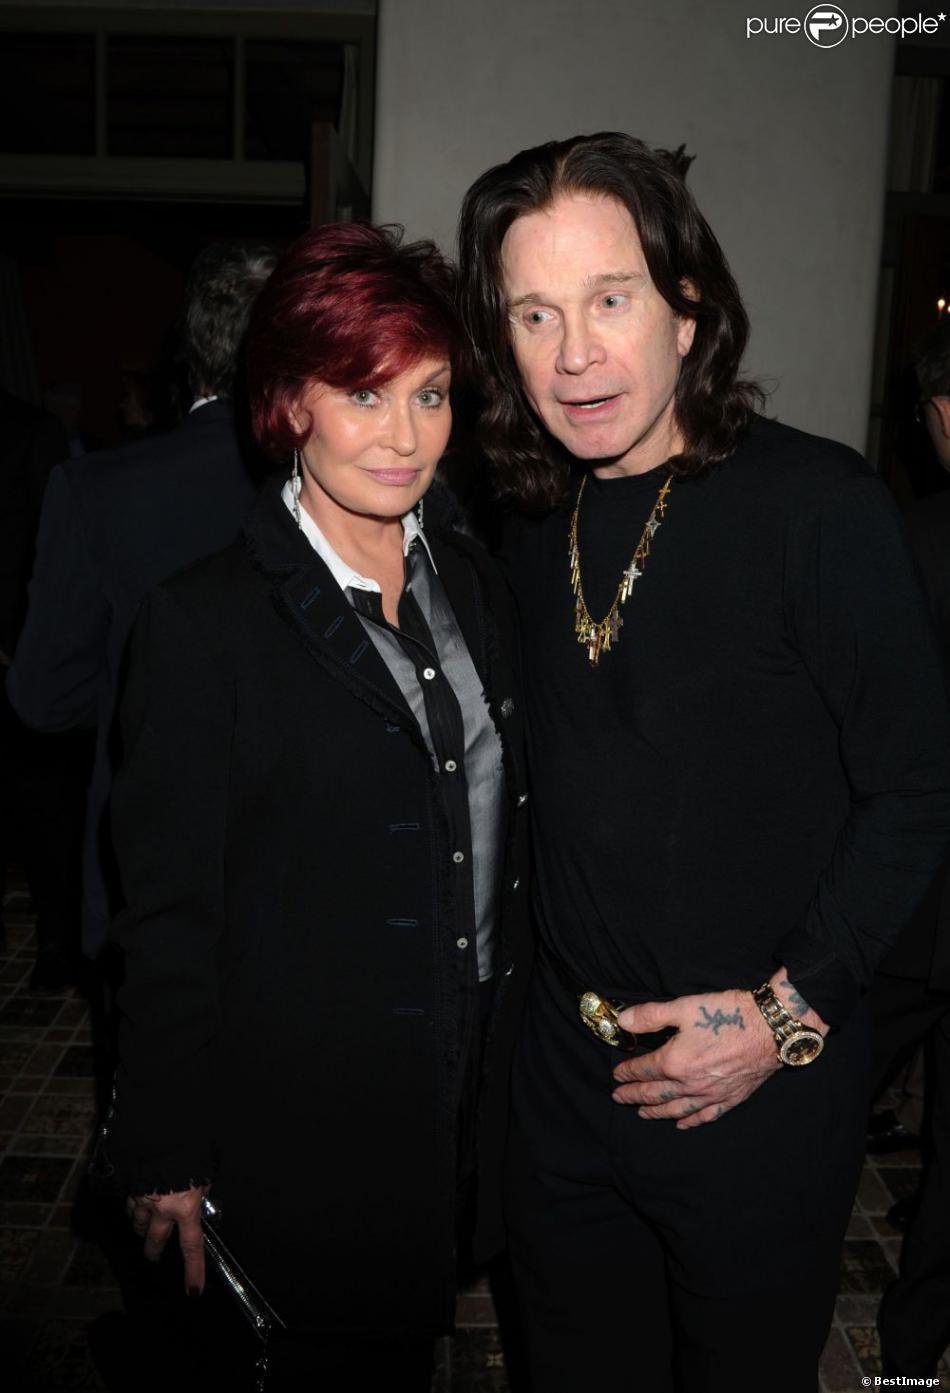 Sharon Osbourne and Ozzy Osbourne à la soirée Universal Music Group Chairman & CEO Lucian Grainge's annual Grammy Awards, à Brentwood, Los Angeles le 10 février 2013.